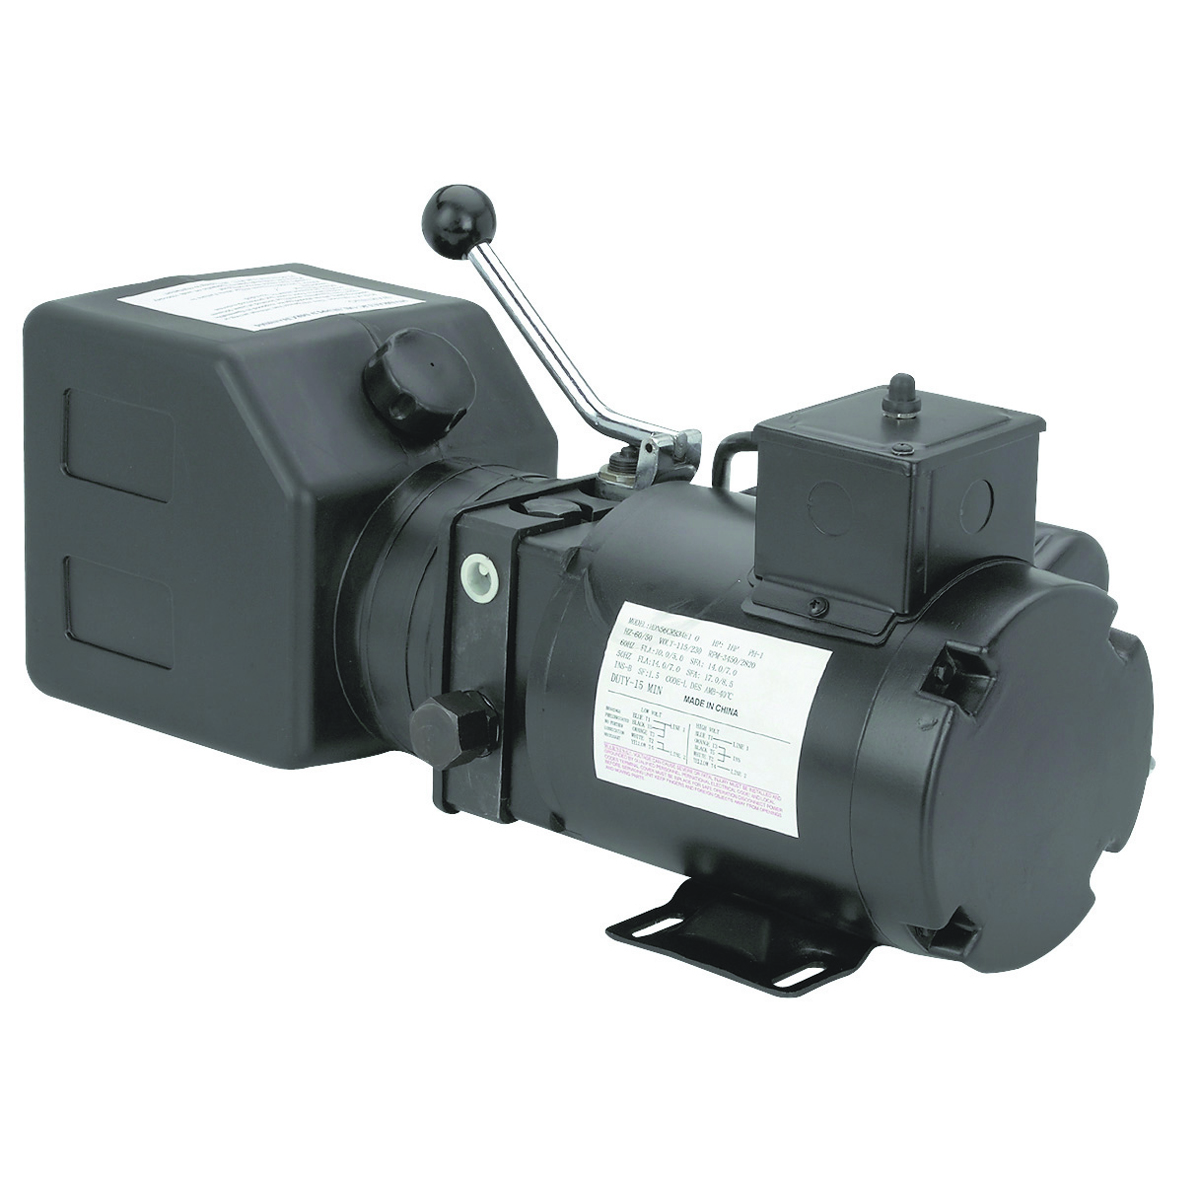 Electric hydraulic pump save on this 1 hp hydraulic pump for Hydraulic motor and pump